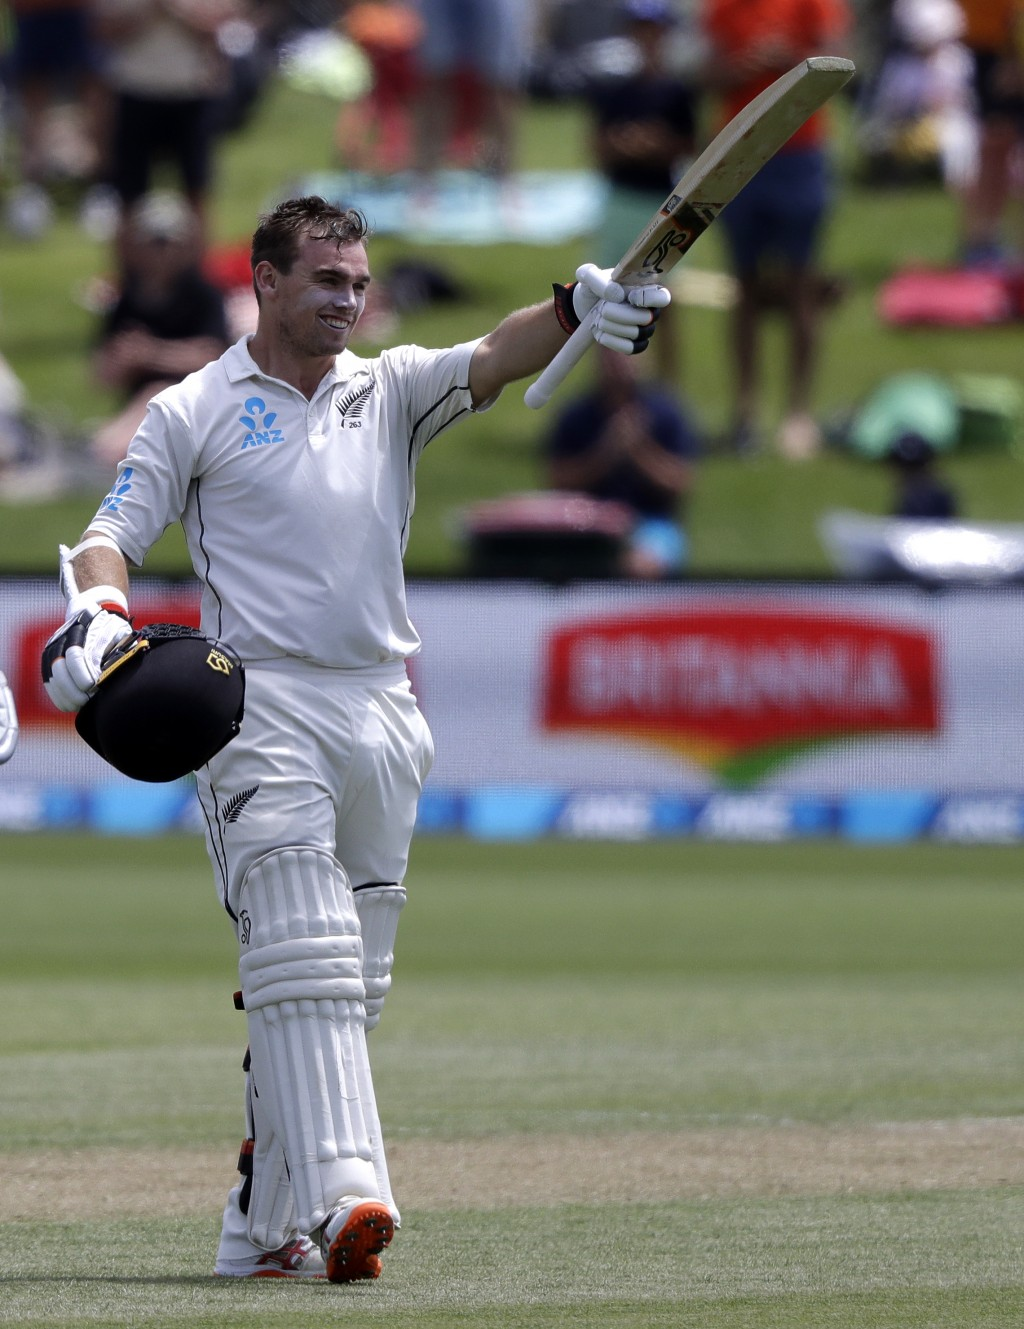 New Zealand's Tom Latham celebrates after scoring a century during play on day three of the second cricket test between New Zealand and Sri Lanka at H...